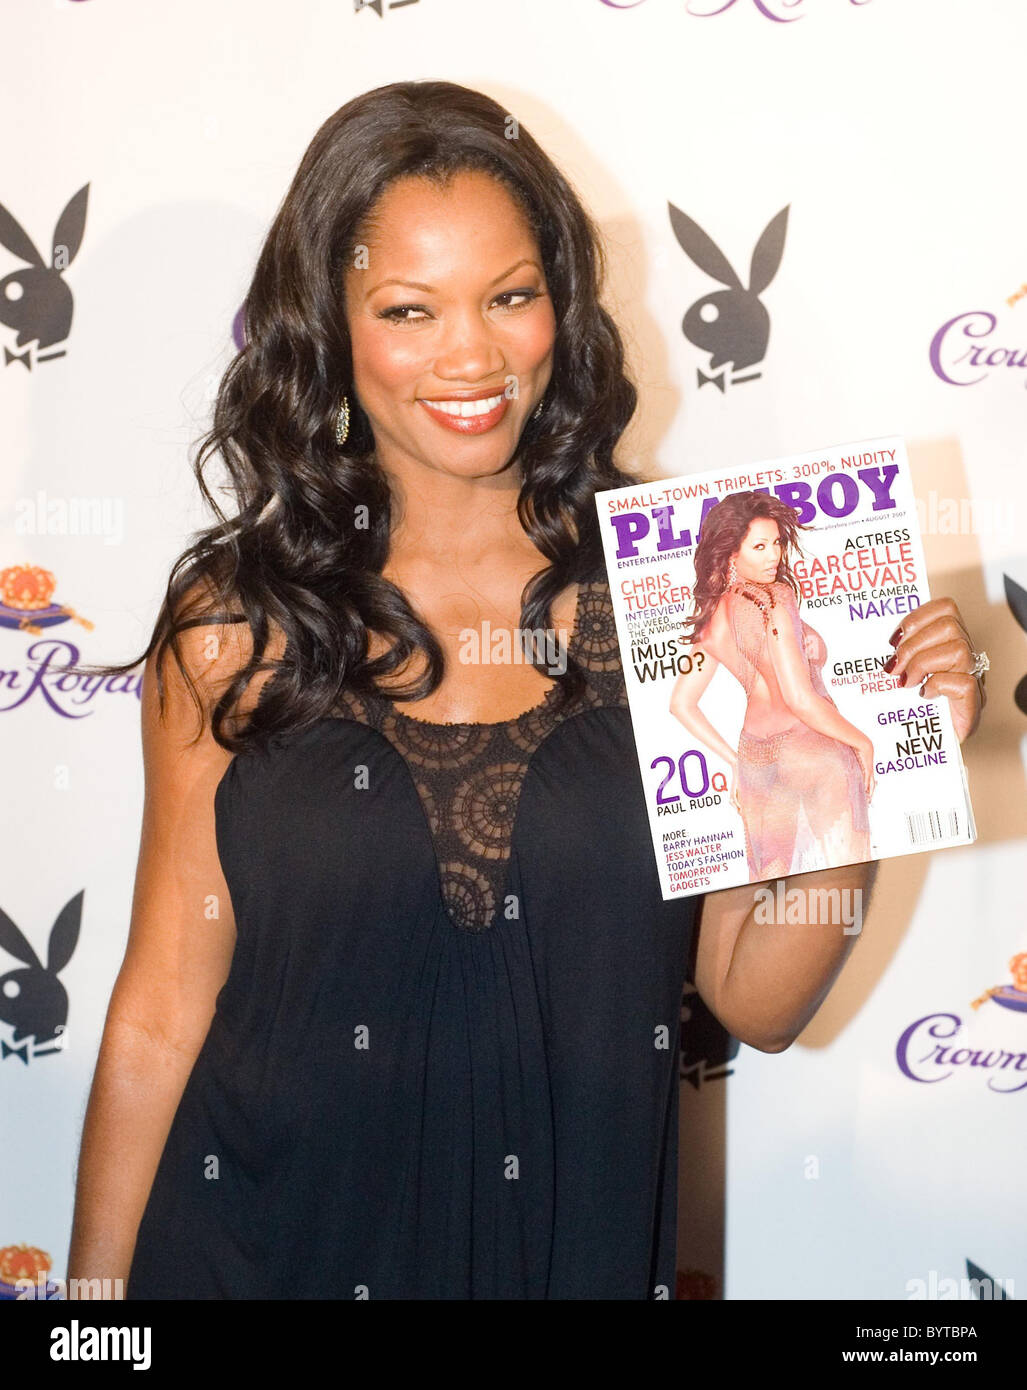 Garcelle Beauvais nudes (43 pictures), hacked Ass, Snapchat, cameltoe 2016